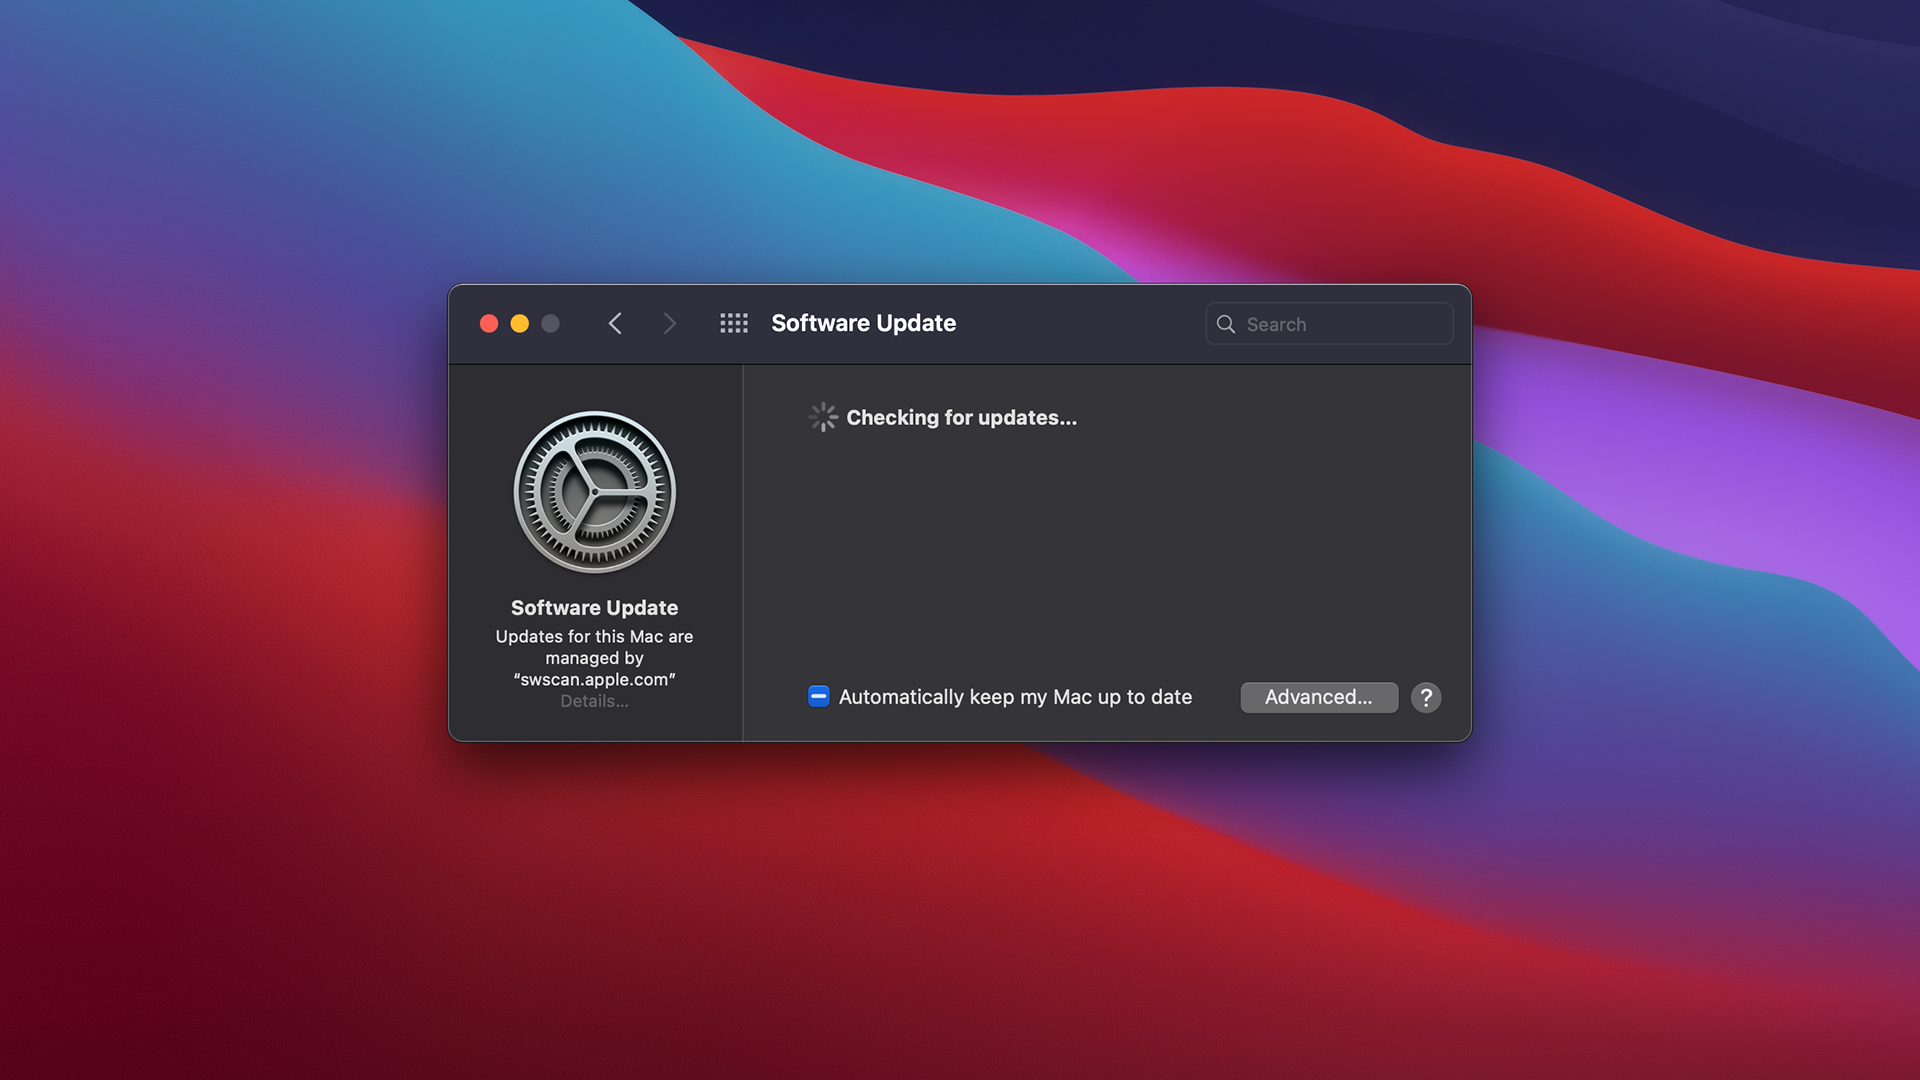 What's new in macOS 11 Big Sur beta 3? Battery icon change, new screenshot sound effect, more